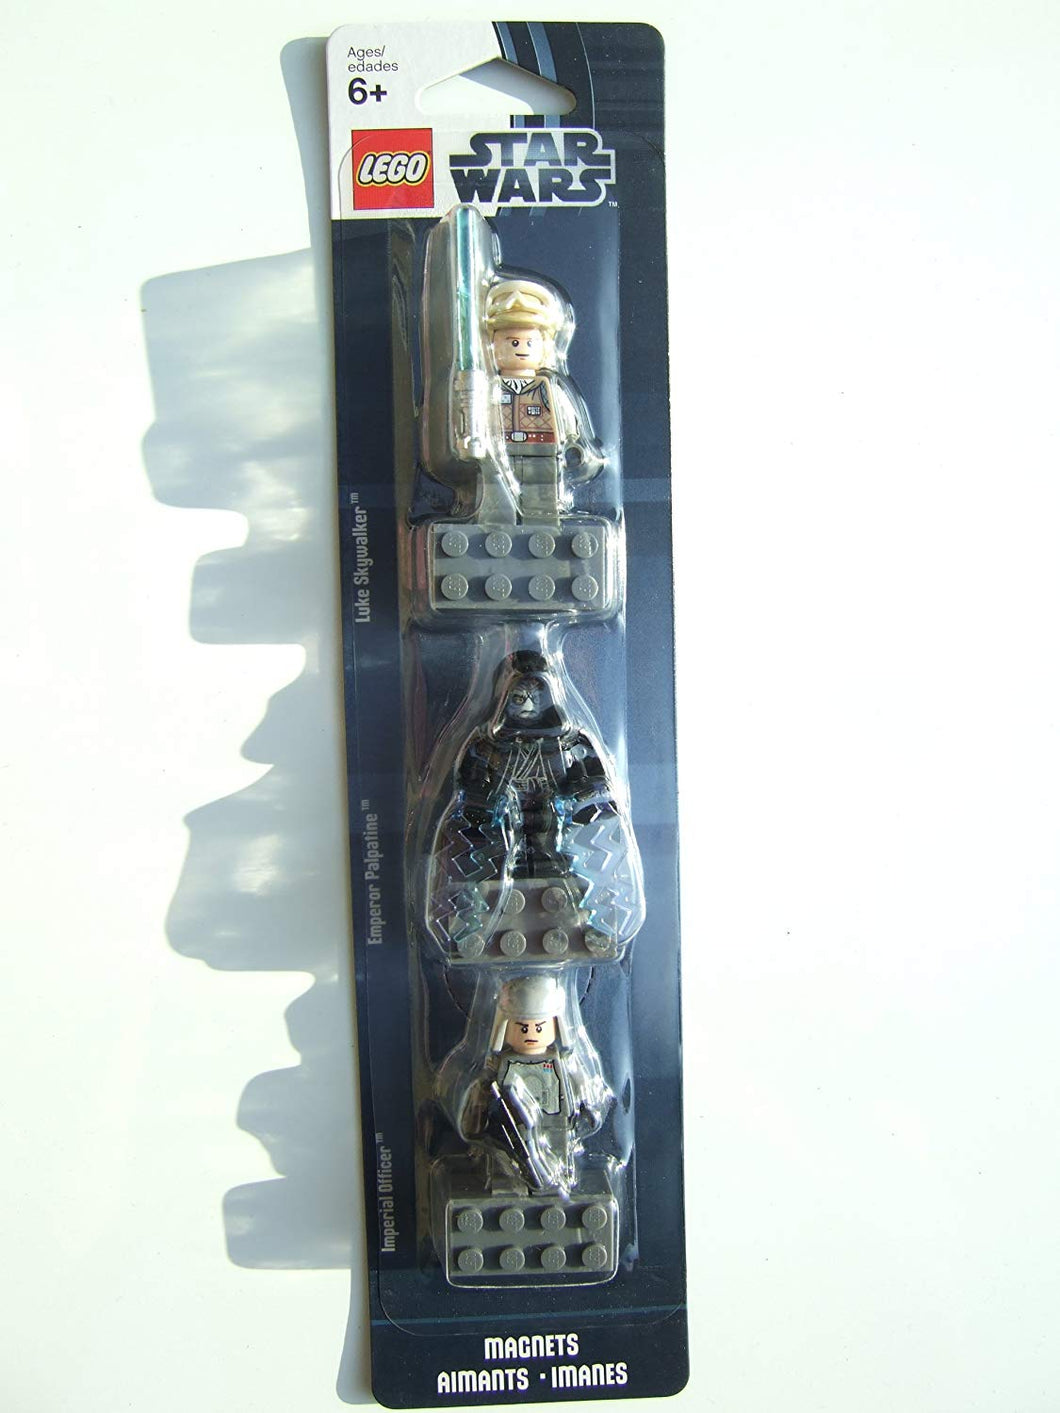 LEGO Star Wars Magnets #853419